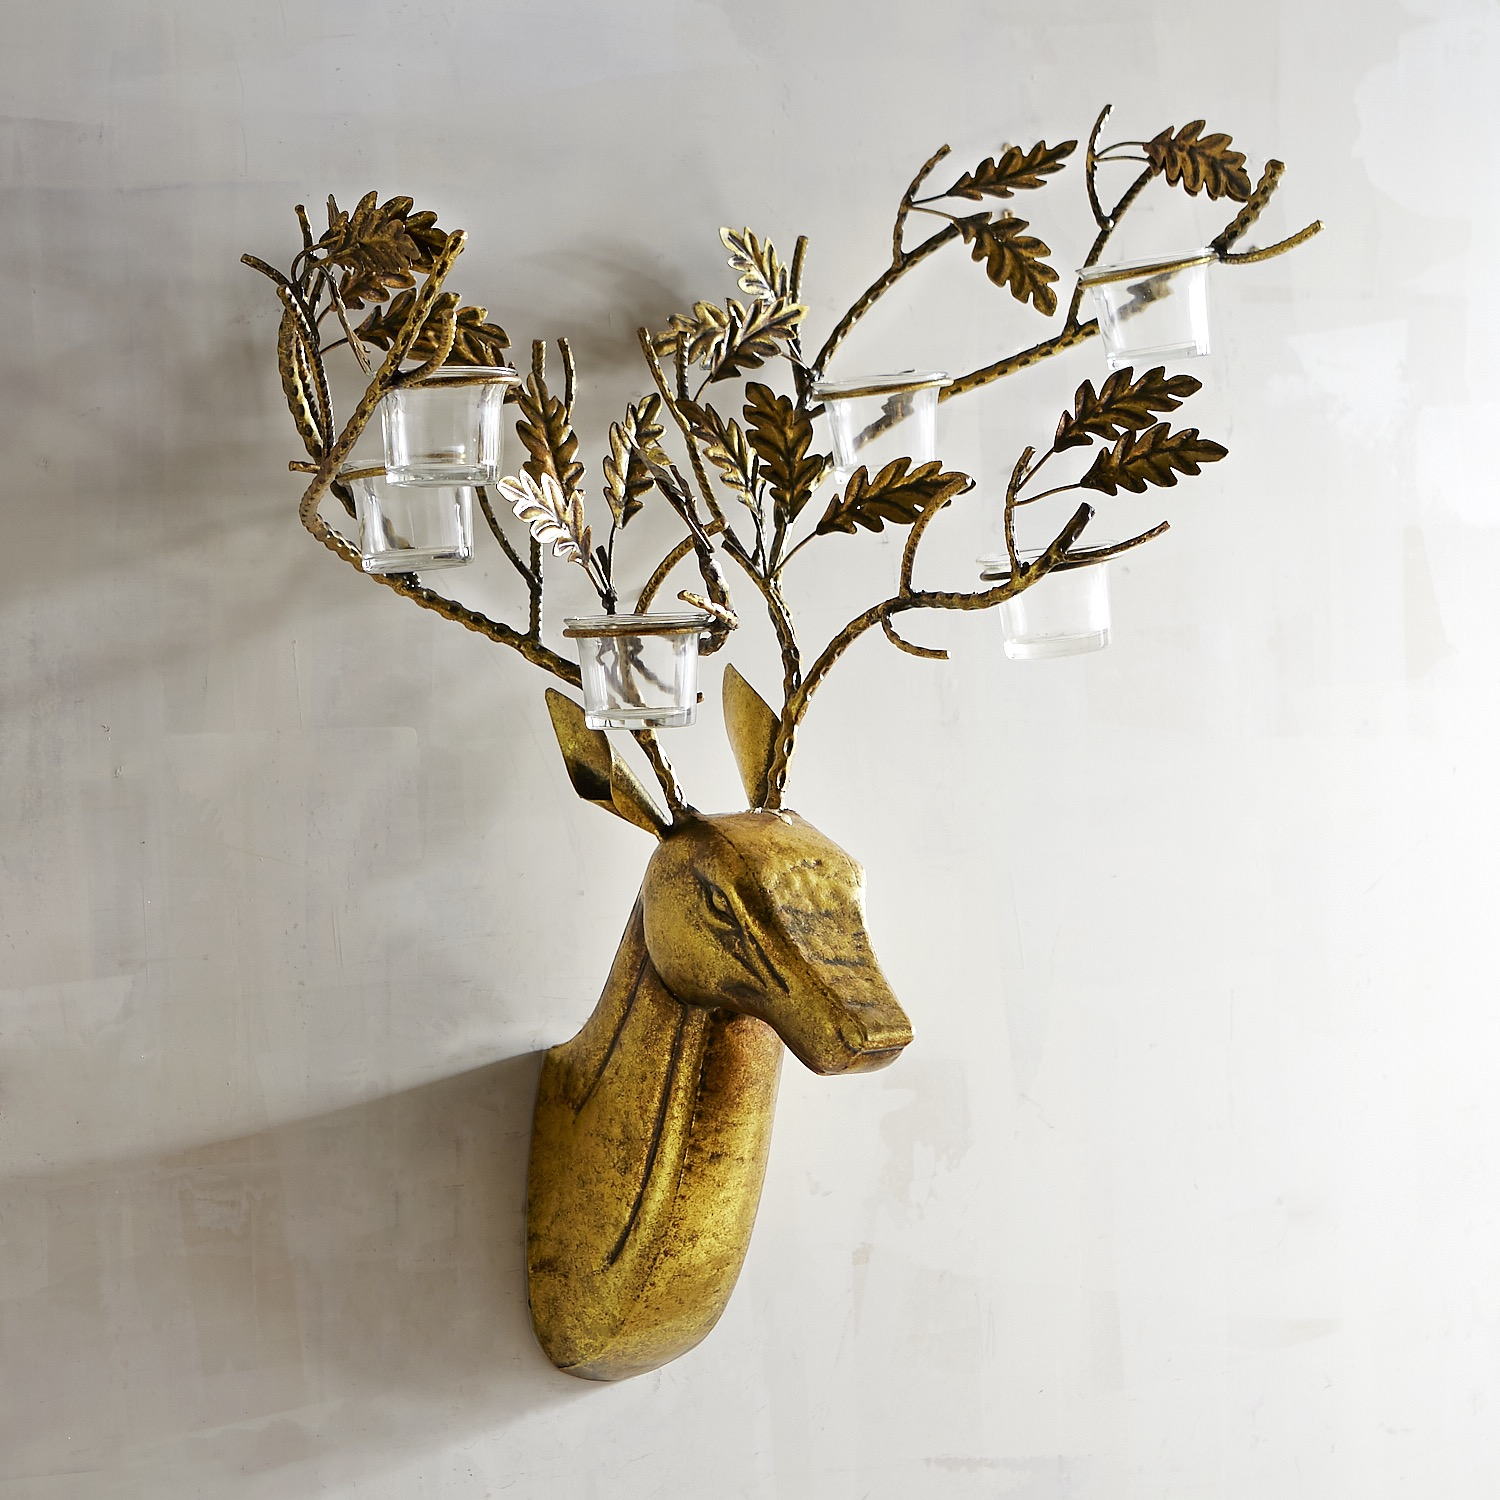 Gold Deer Tealight Candle Holder Wall Sconce